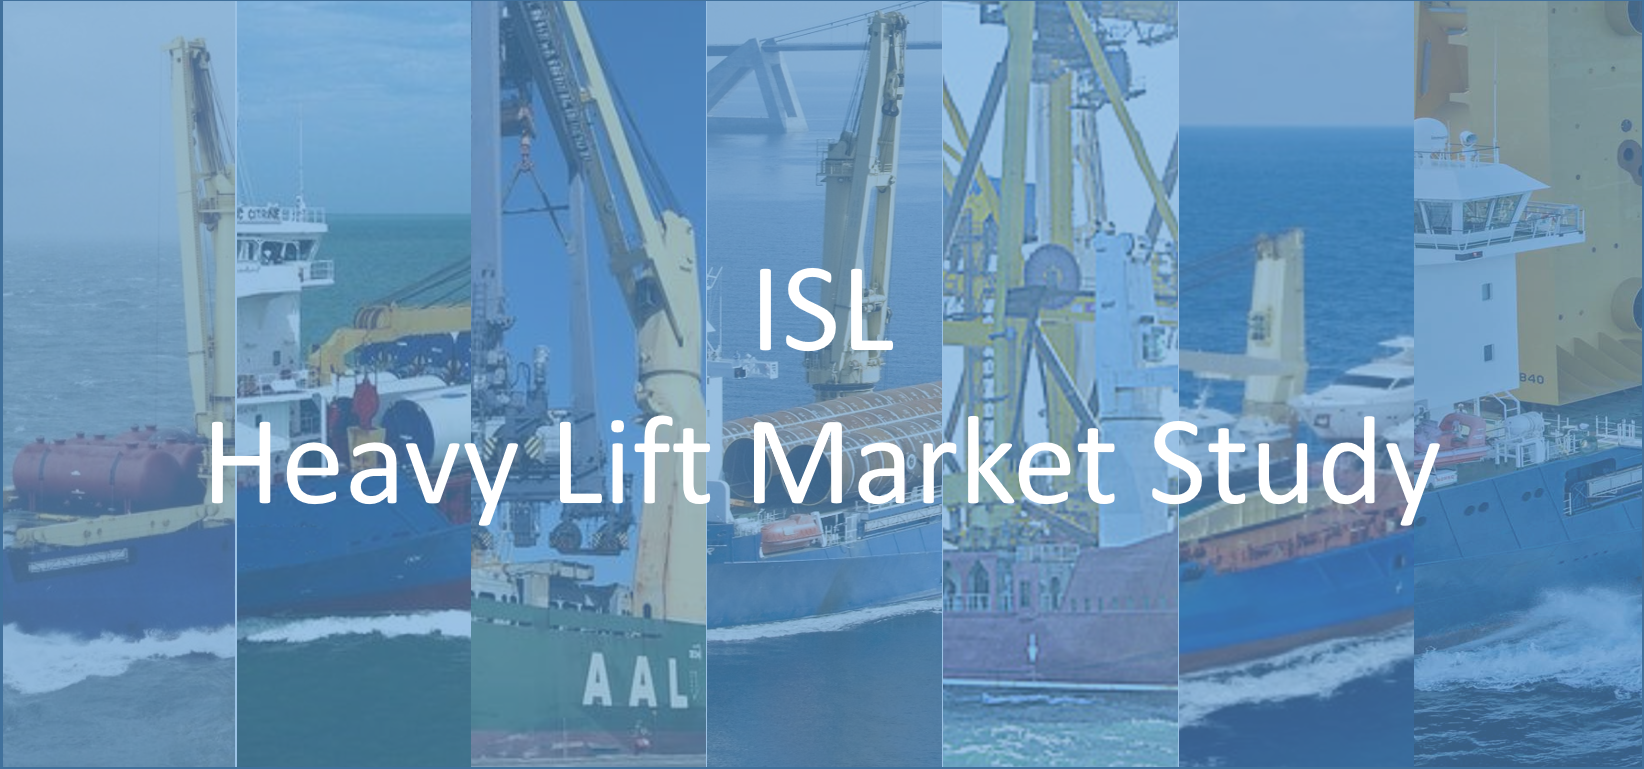 Low market growth with stable fleet - moderate outlook for heavy lift shipping